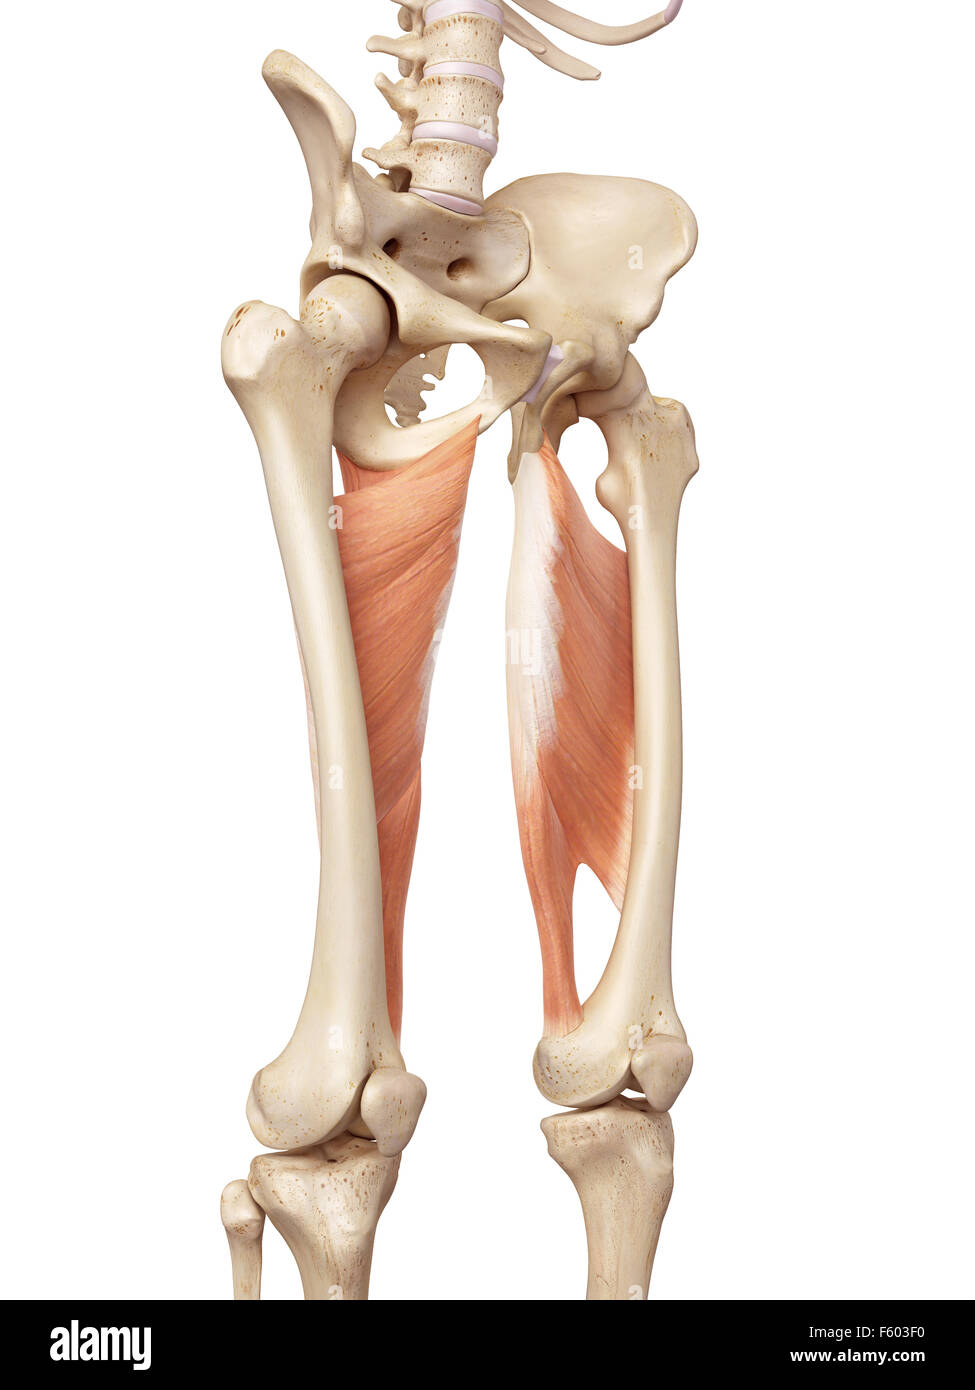 medical accurate illustration of the adductor magnus - Stock Image